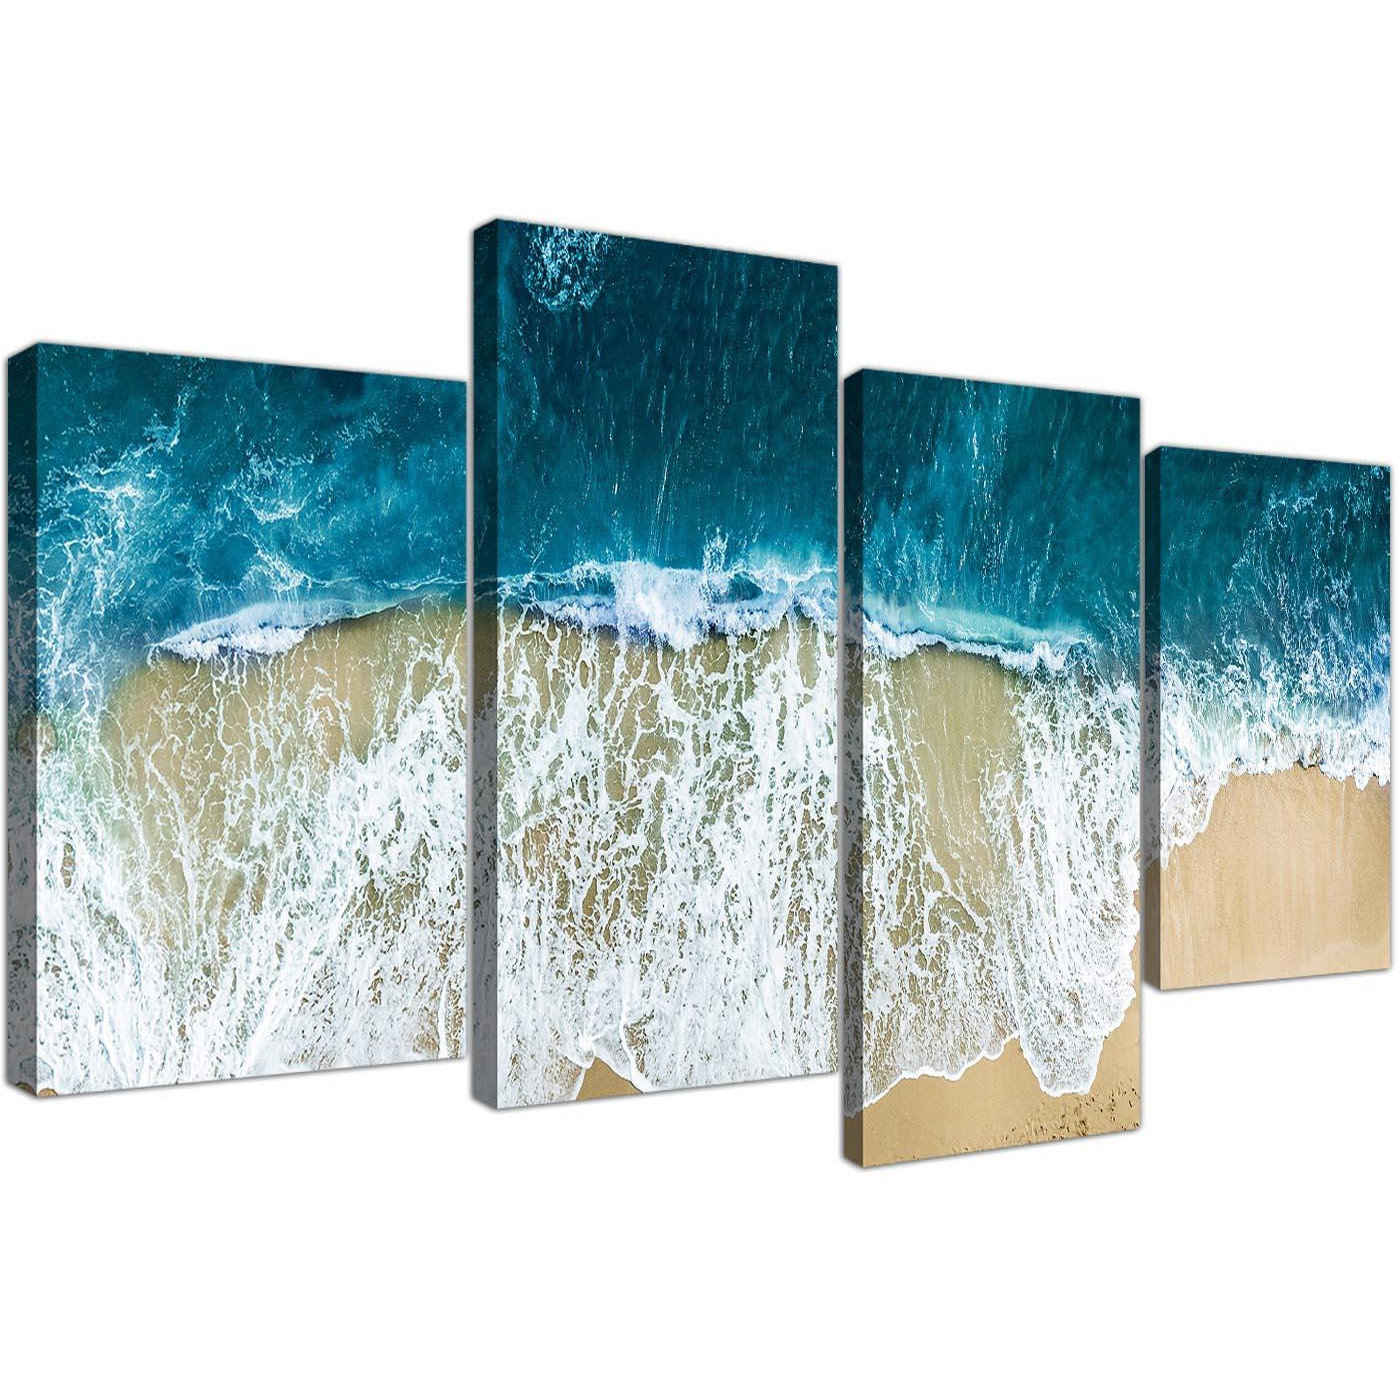 Wall Prints For Living Room Australia Panoramic Ocean Beach Scene Australia Beach Canvas 4 Panel Set 130cm 4244